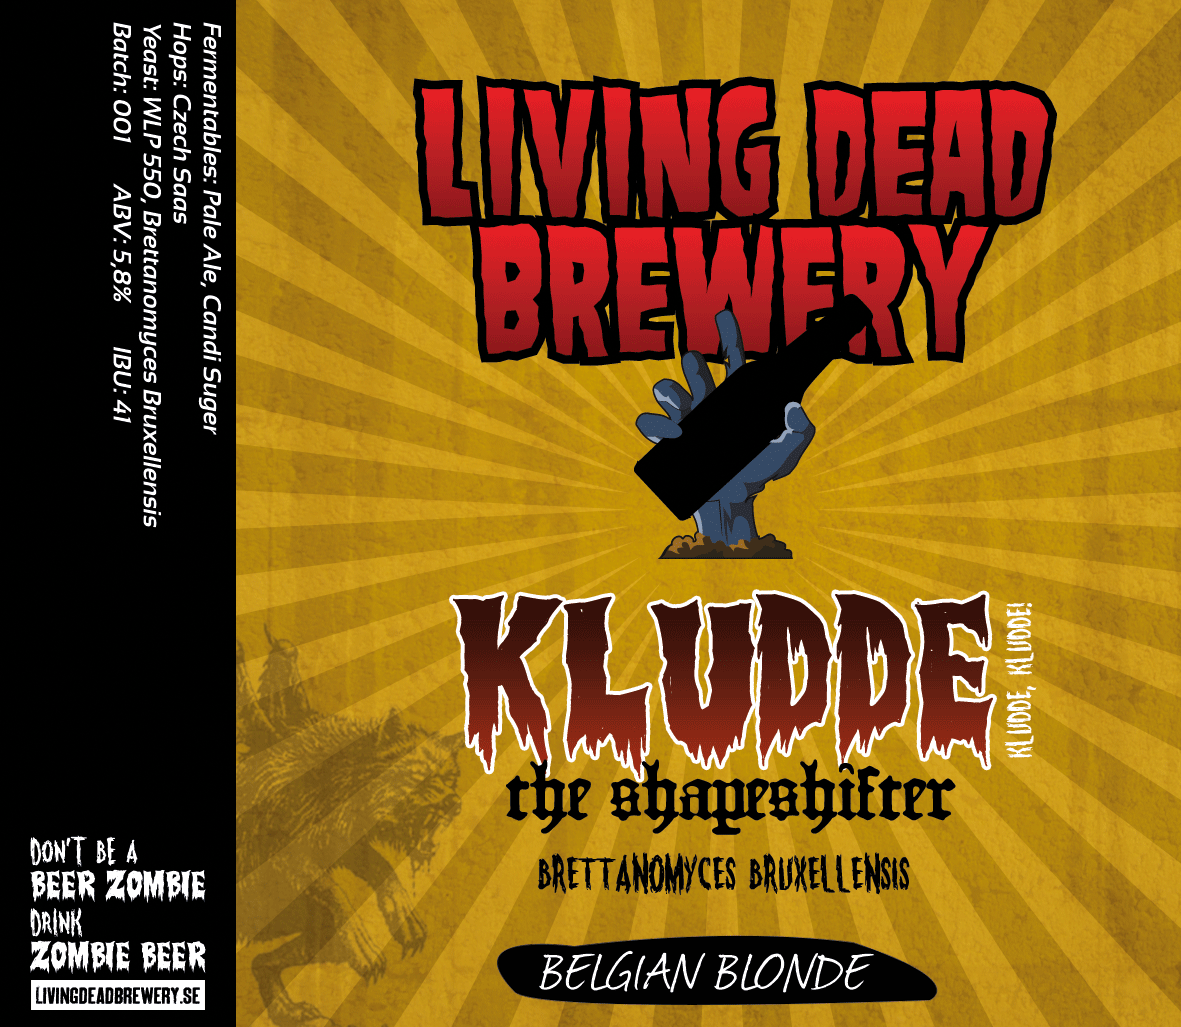 kludde-the-shapeshifter-Brettanomyces-Bruxellensis